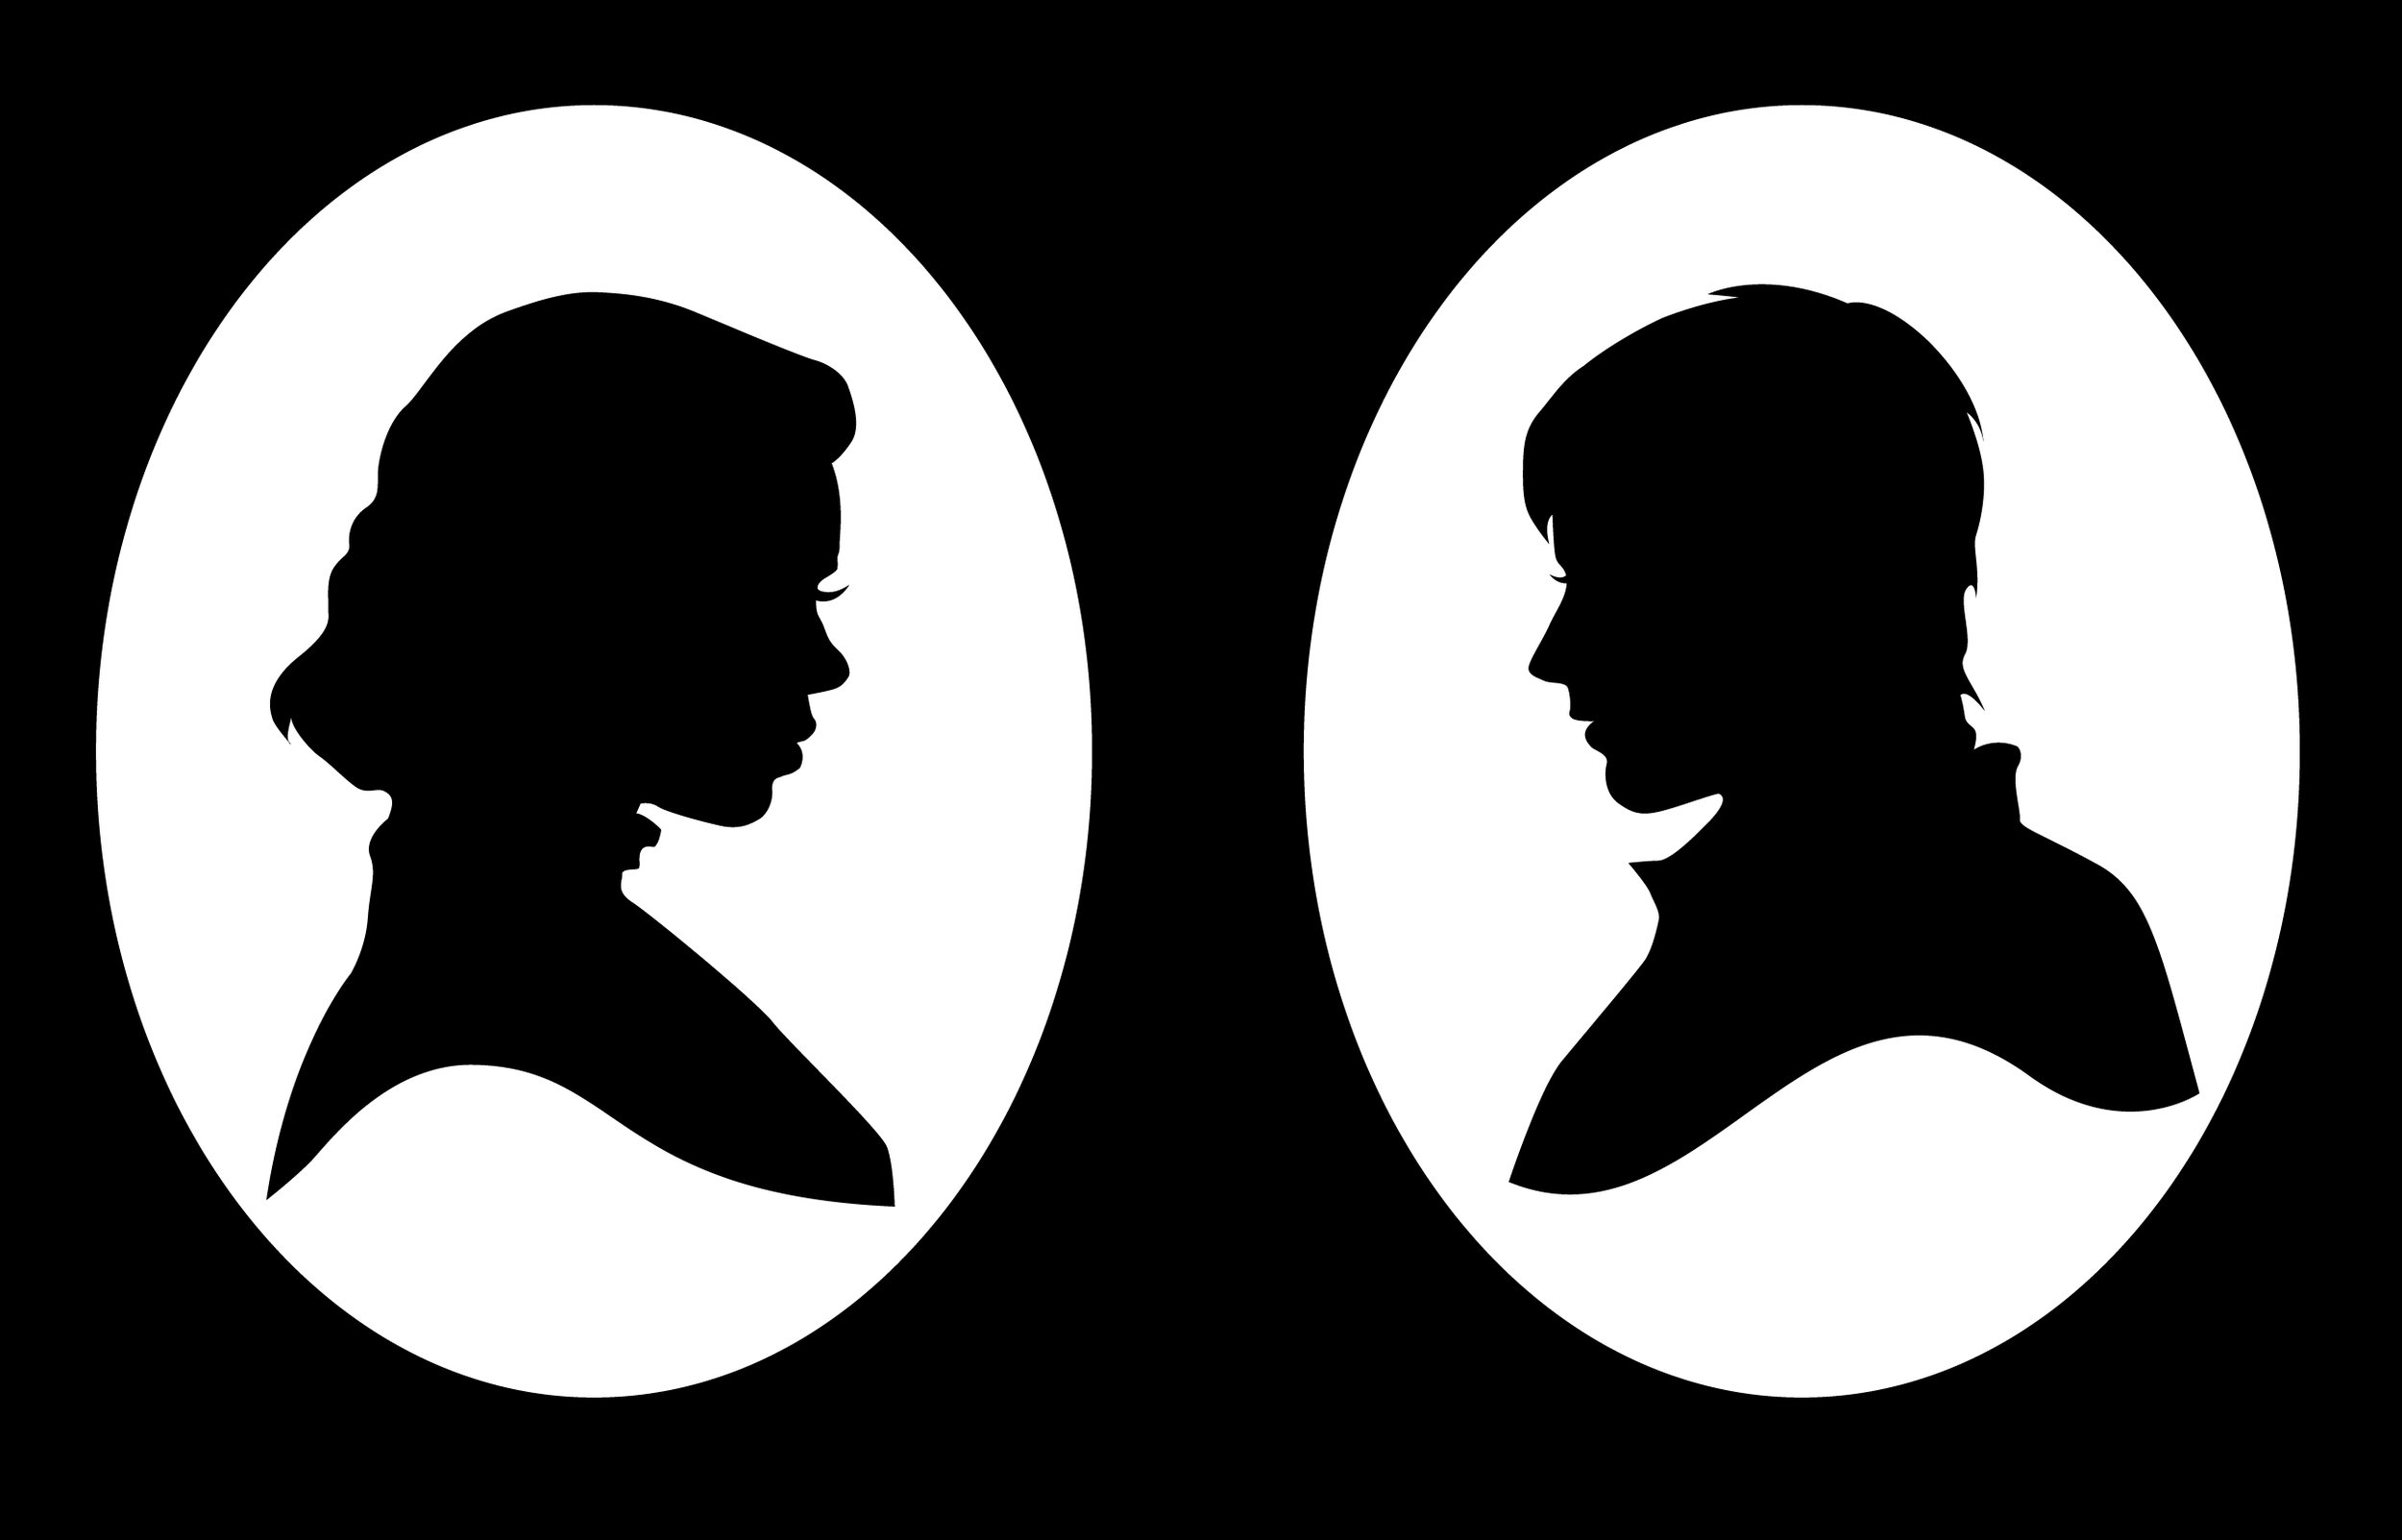 Penny Dreadful  silhouettes: Lily, the Bride of Frankenstein and Dorian Gray